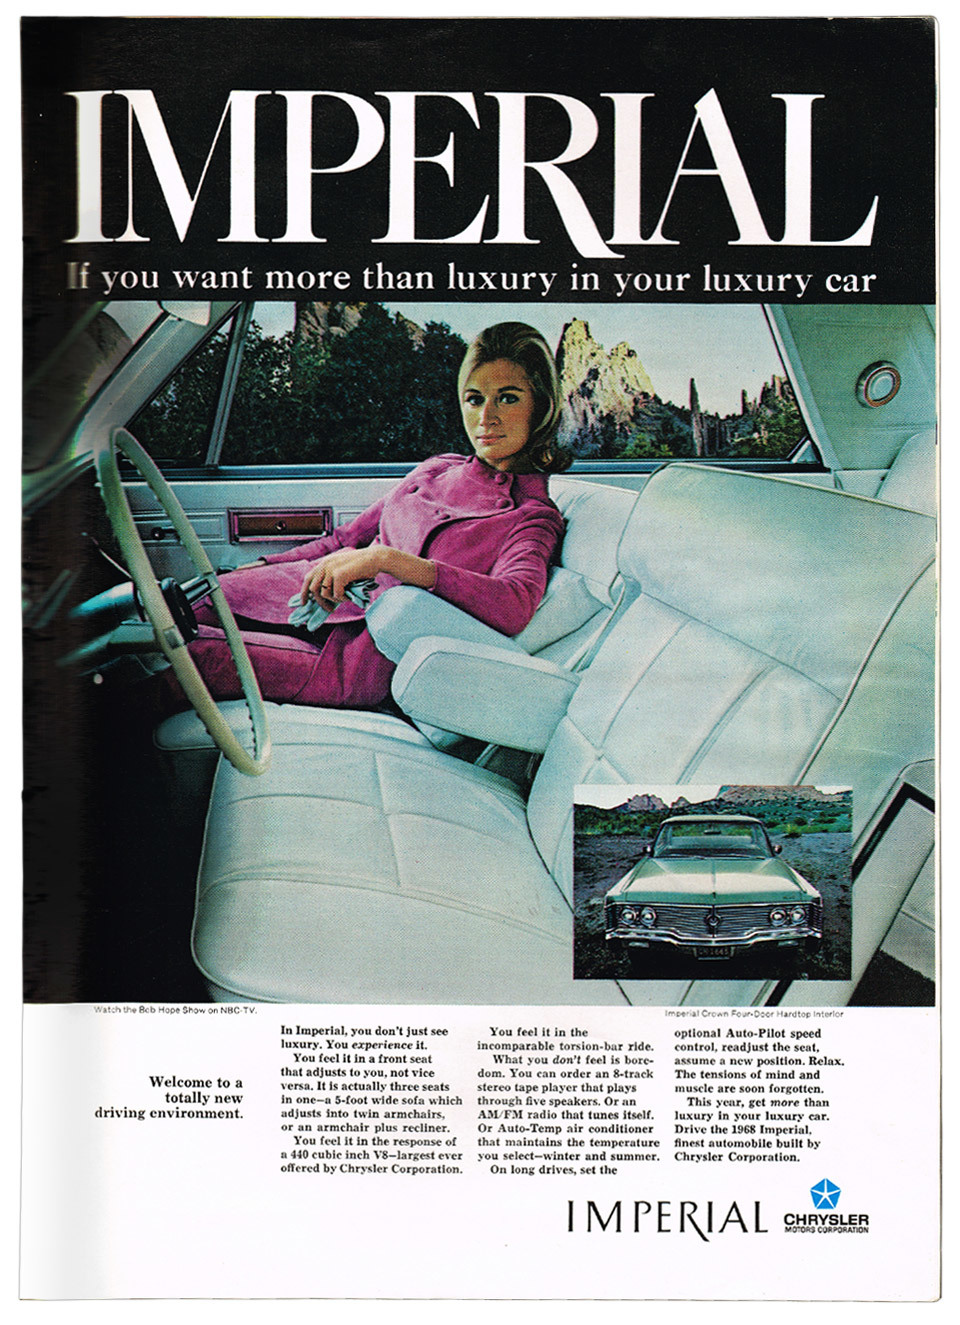 Scientific American magazine : Chrysler Imperial advert.